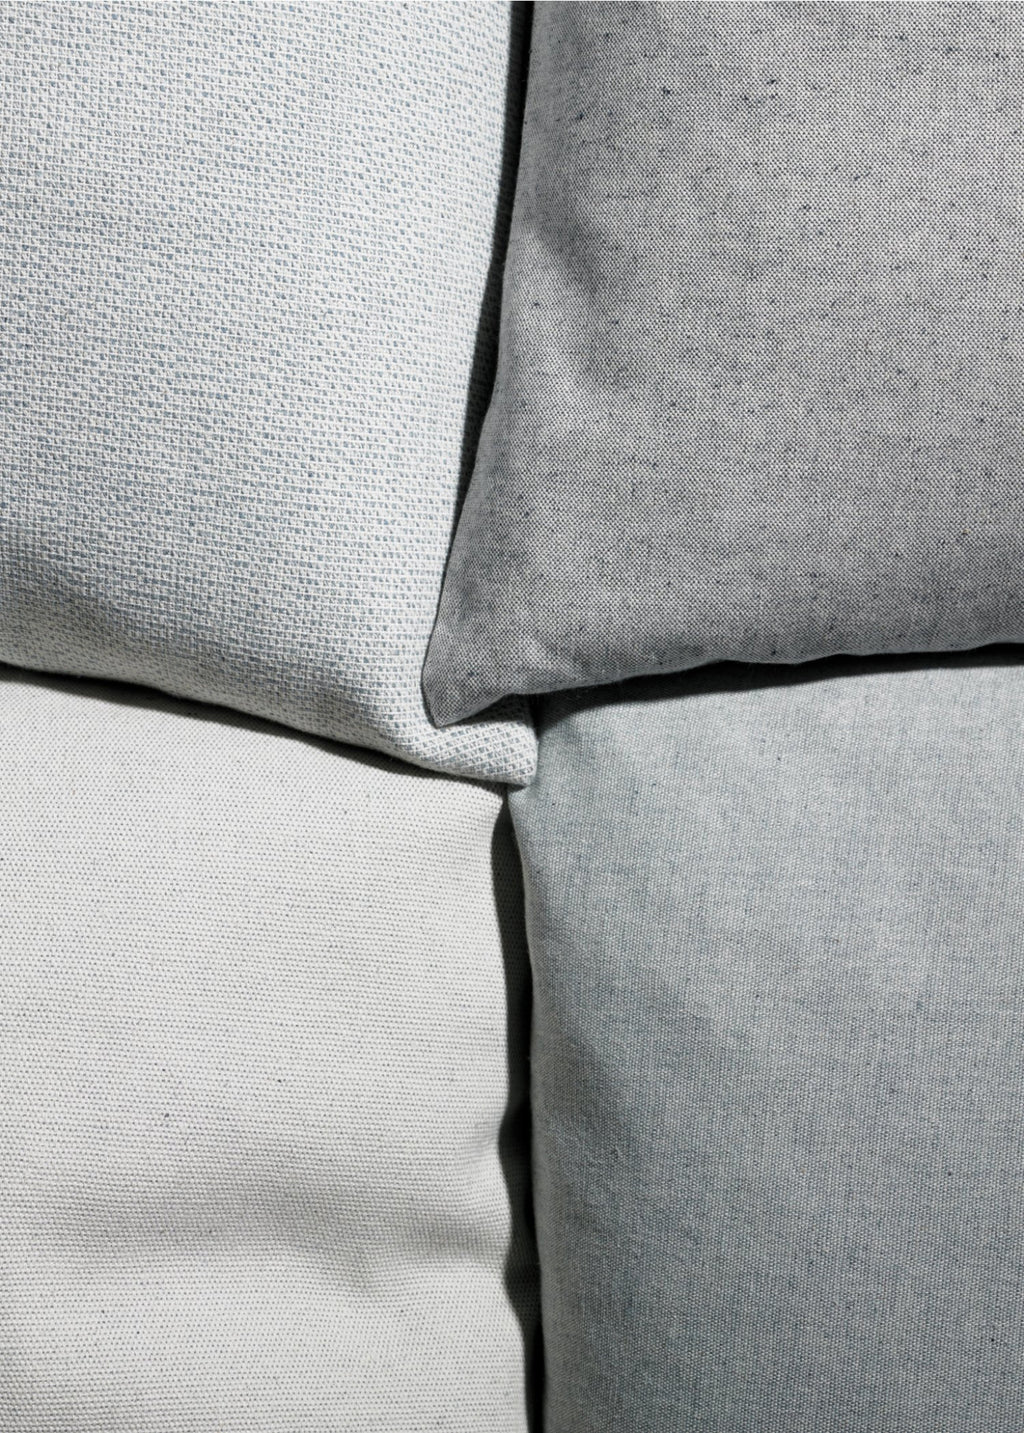 Denim Blue - YUYU Sustainable Home Goods